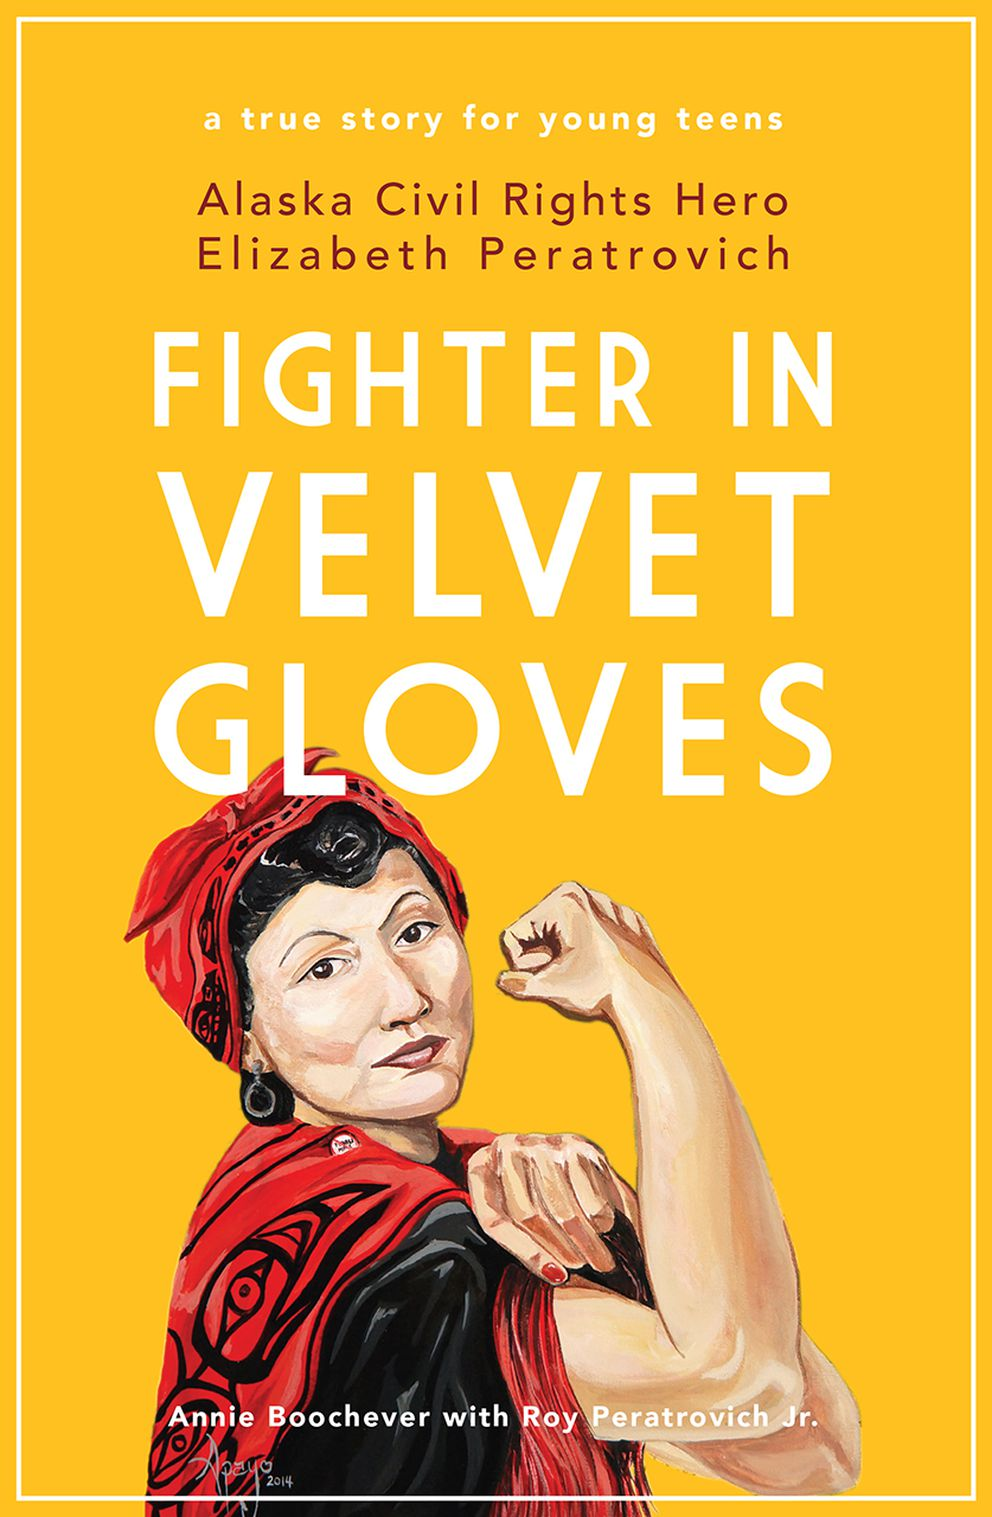 'Fighter in Velvet Gloves: Alaska Civil Rights Hero Elizabeth Peratrovich, ' by Annie Boochever with Roy Peratrovich, Jr.